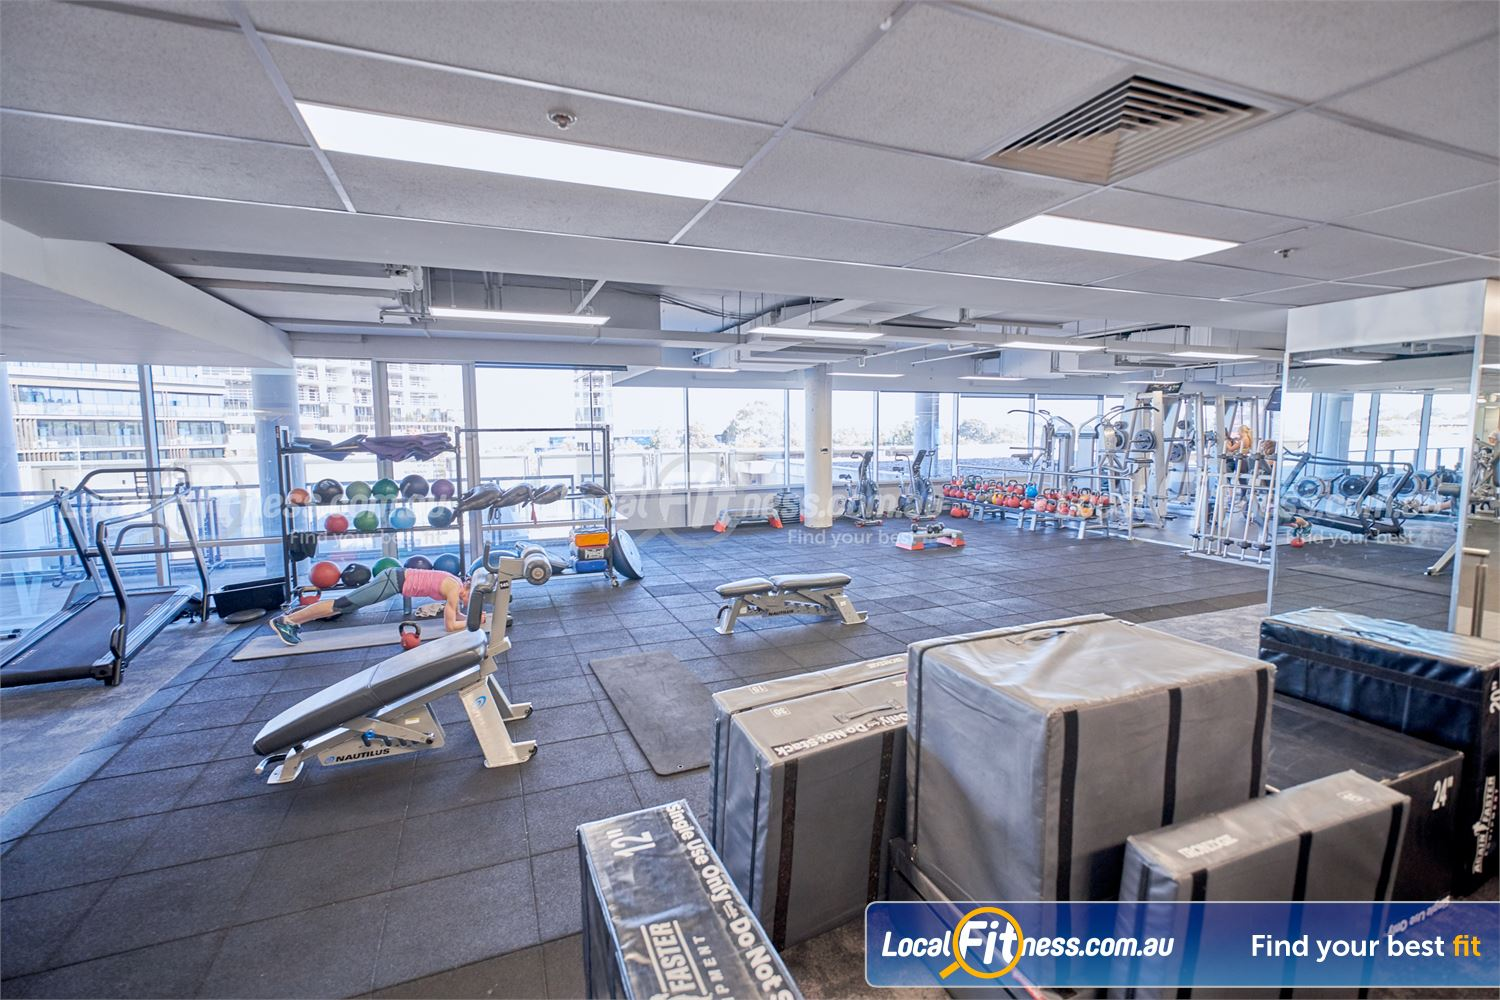 Goodlife Health Clubs Near Canterbury Our functional training area is fully equipped with medicine balls, kettlebells and more.